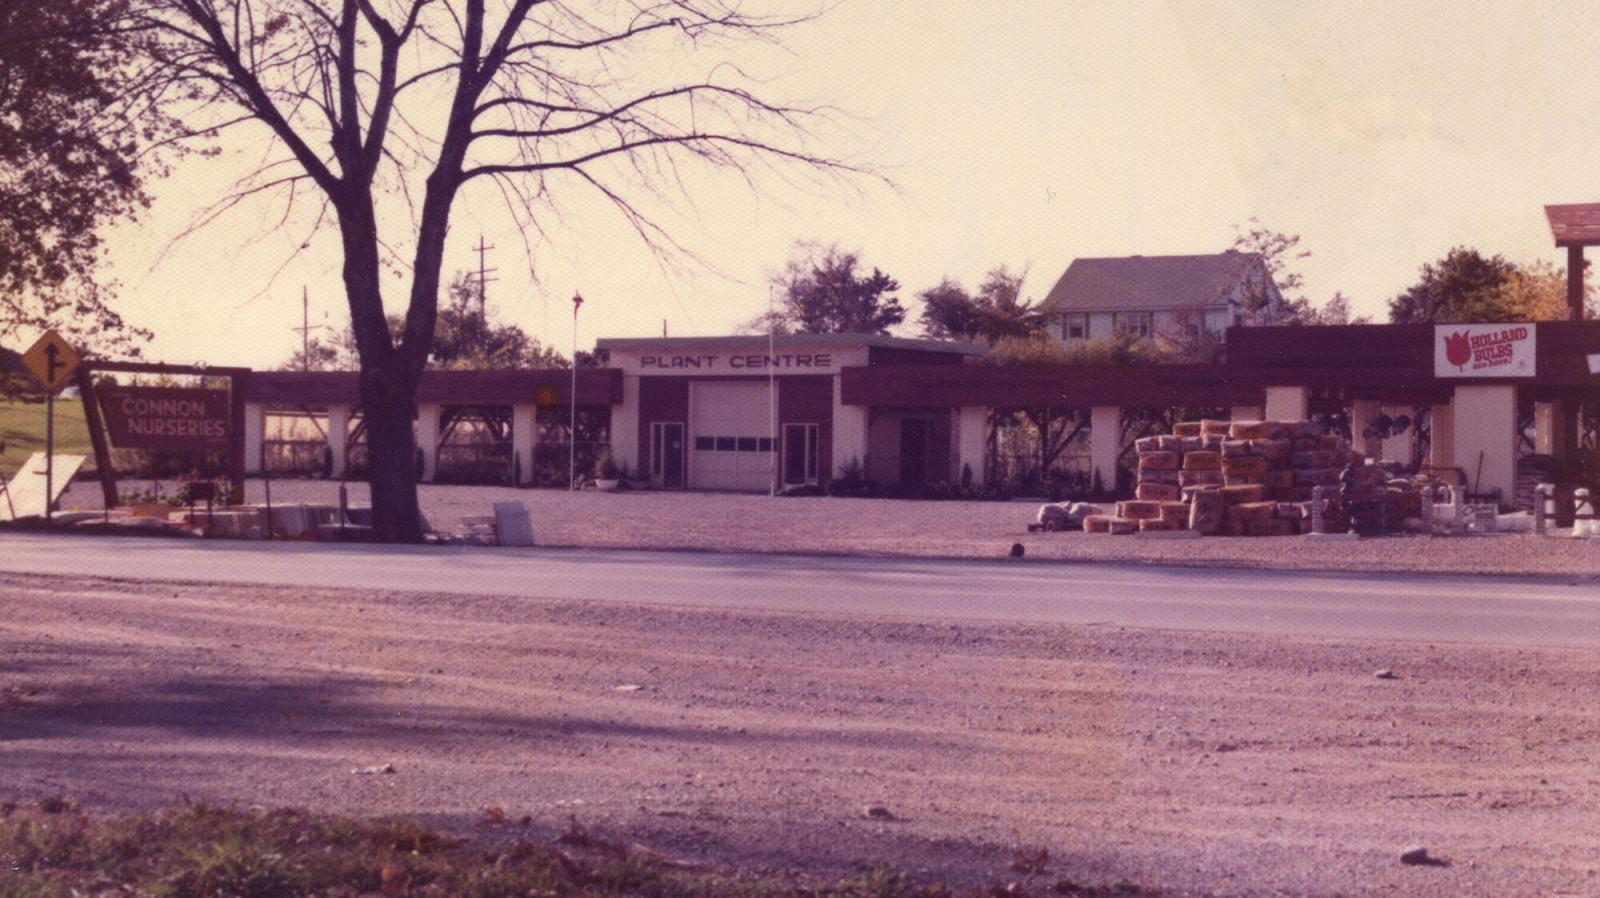 The original garden centre in Waterdown was damaged by fire in the late 1970s.